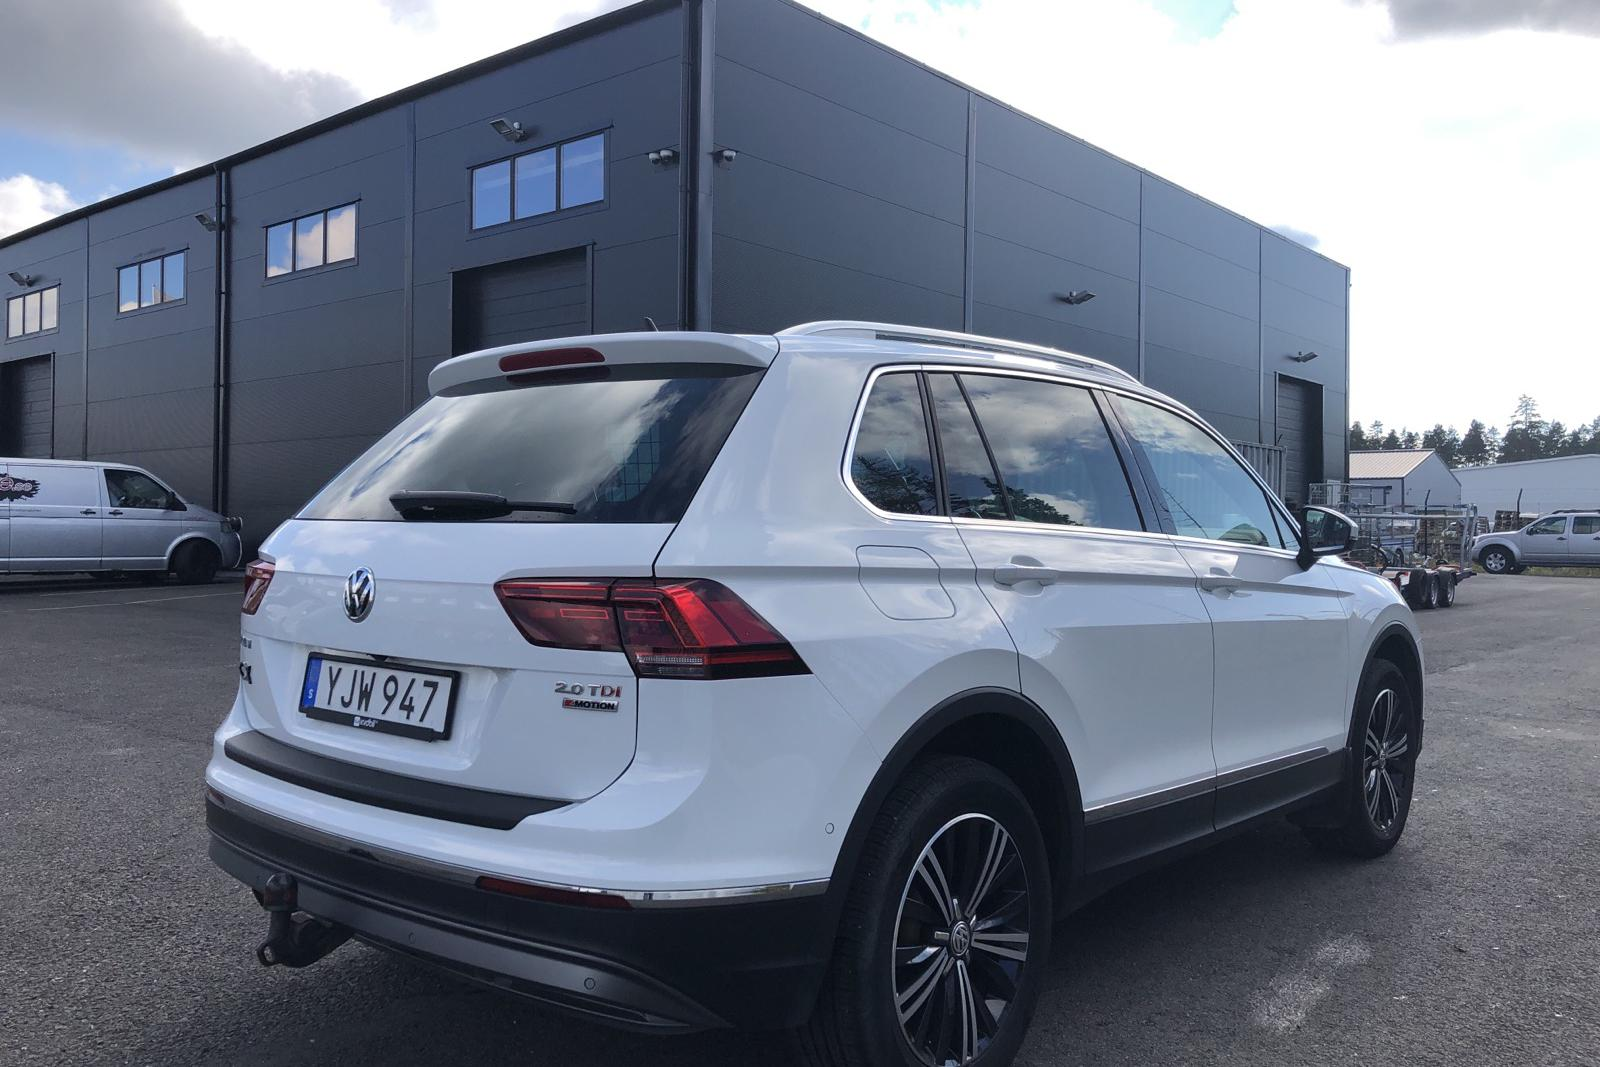 VW Tiguan 2.0 TDI 4MOTION (190hk) - 140 500 km - Automatic - white - 2017